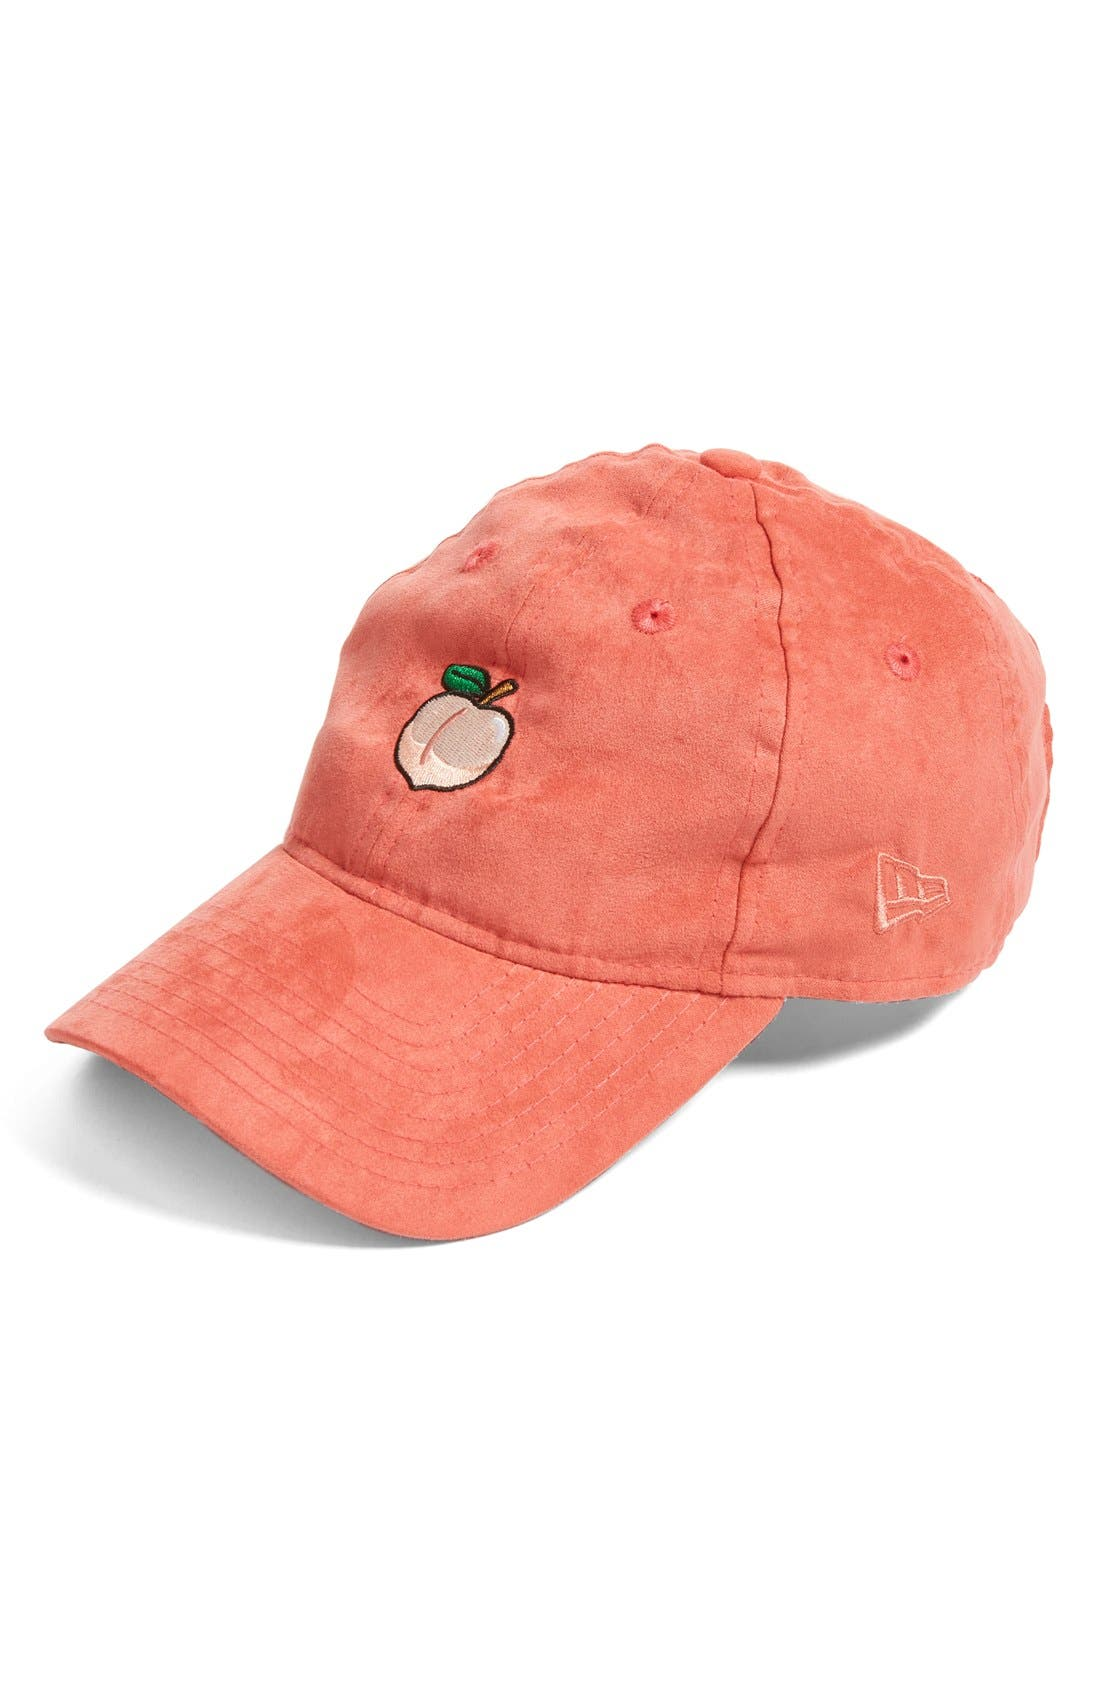 Main Image - New Era Cap Peach Baseball Cap (Nordstrom Exclusive)